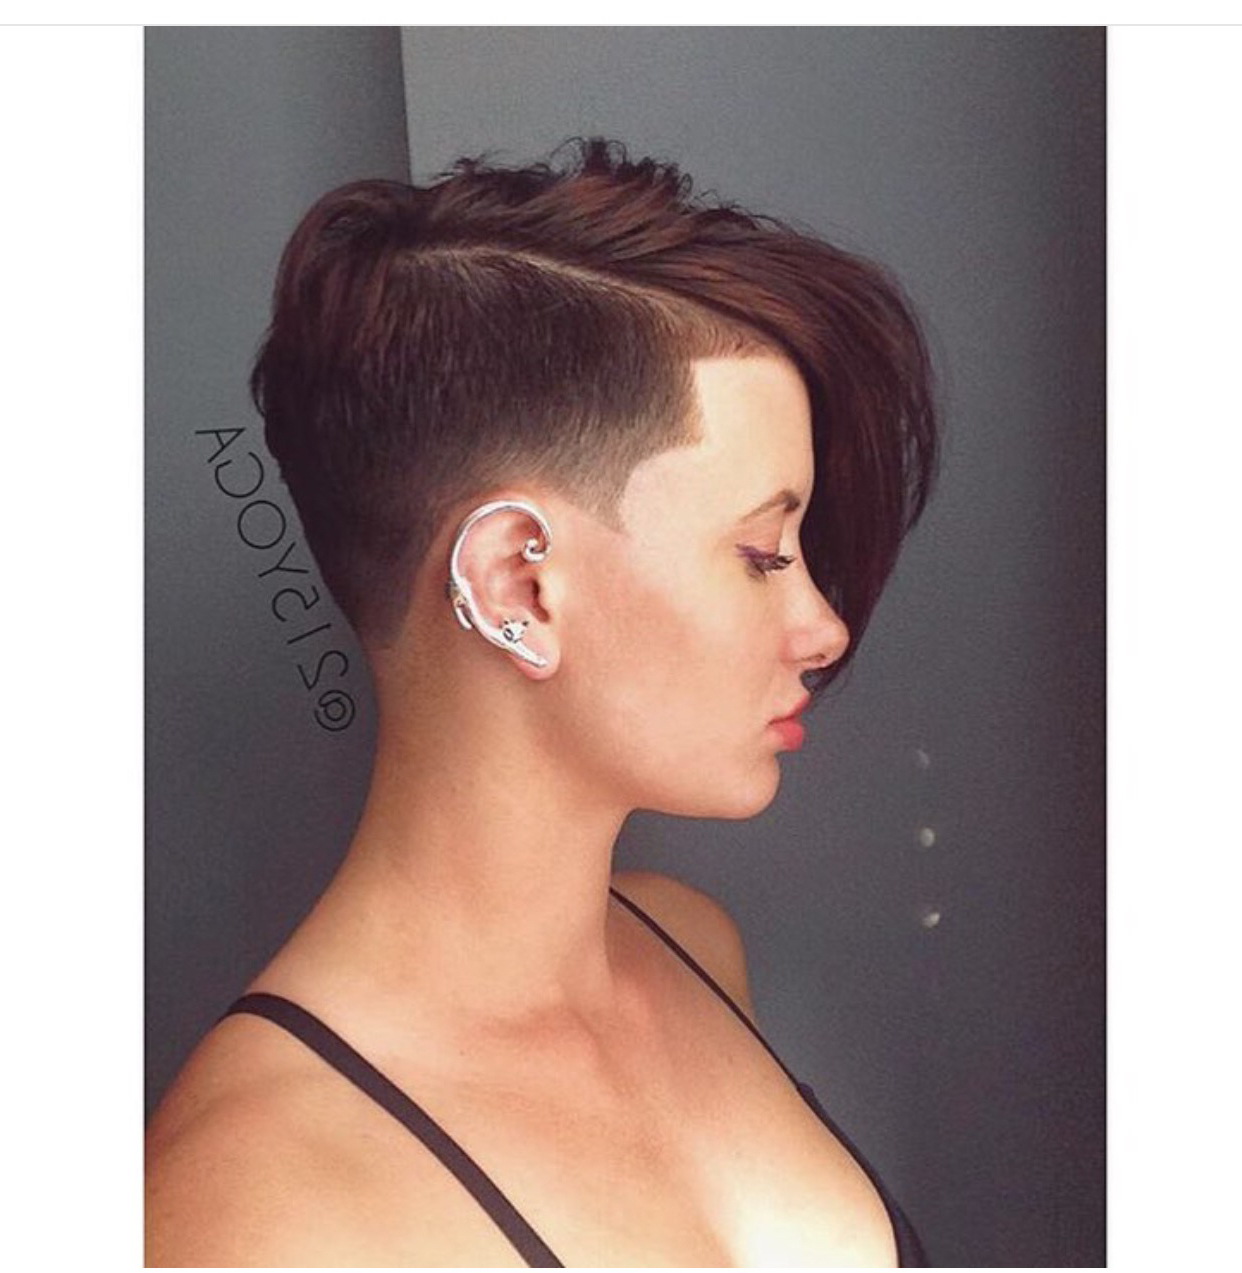 Short Hair Shaved Side Short Hair Cuts Women Pinterest – Lamidieu Pertaining To Shaved Side Short Hairstyles (View 25 of 25)